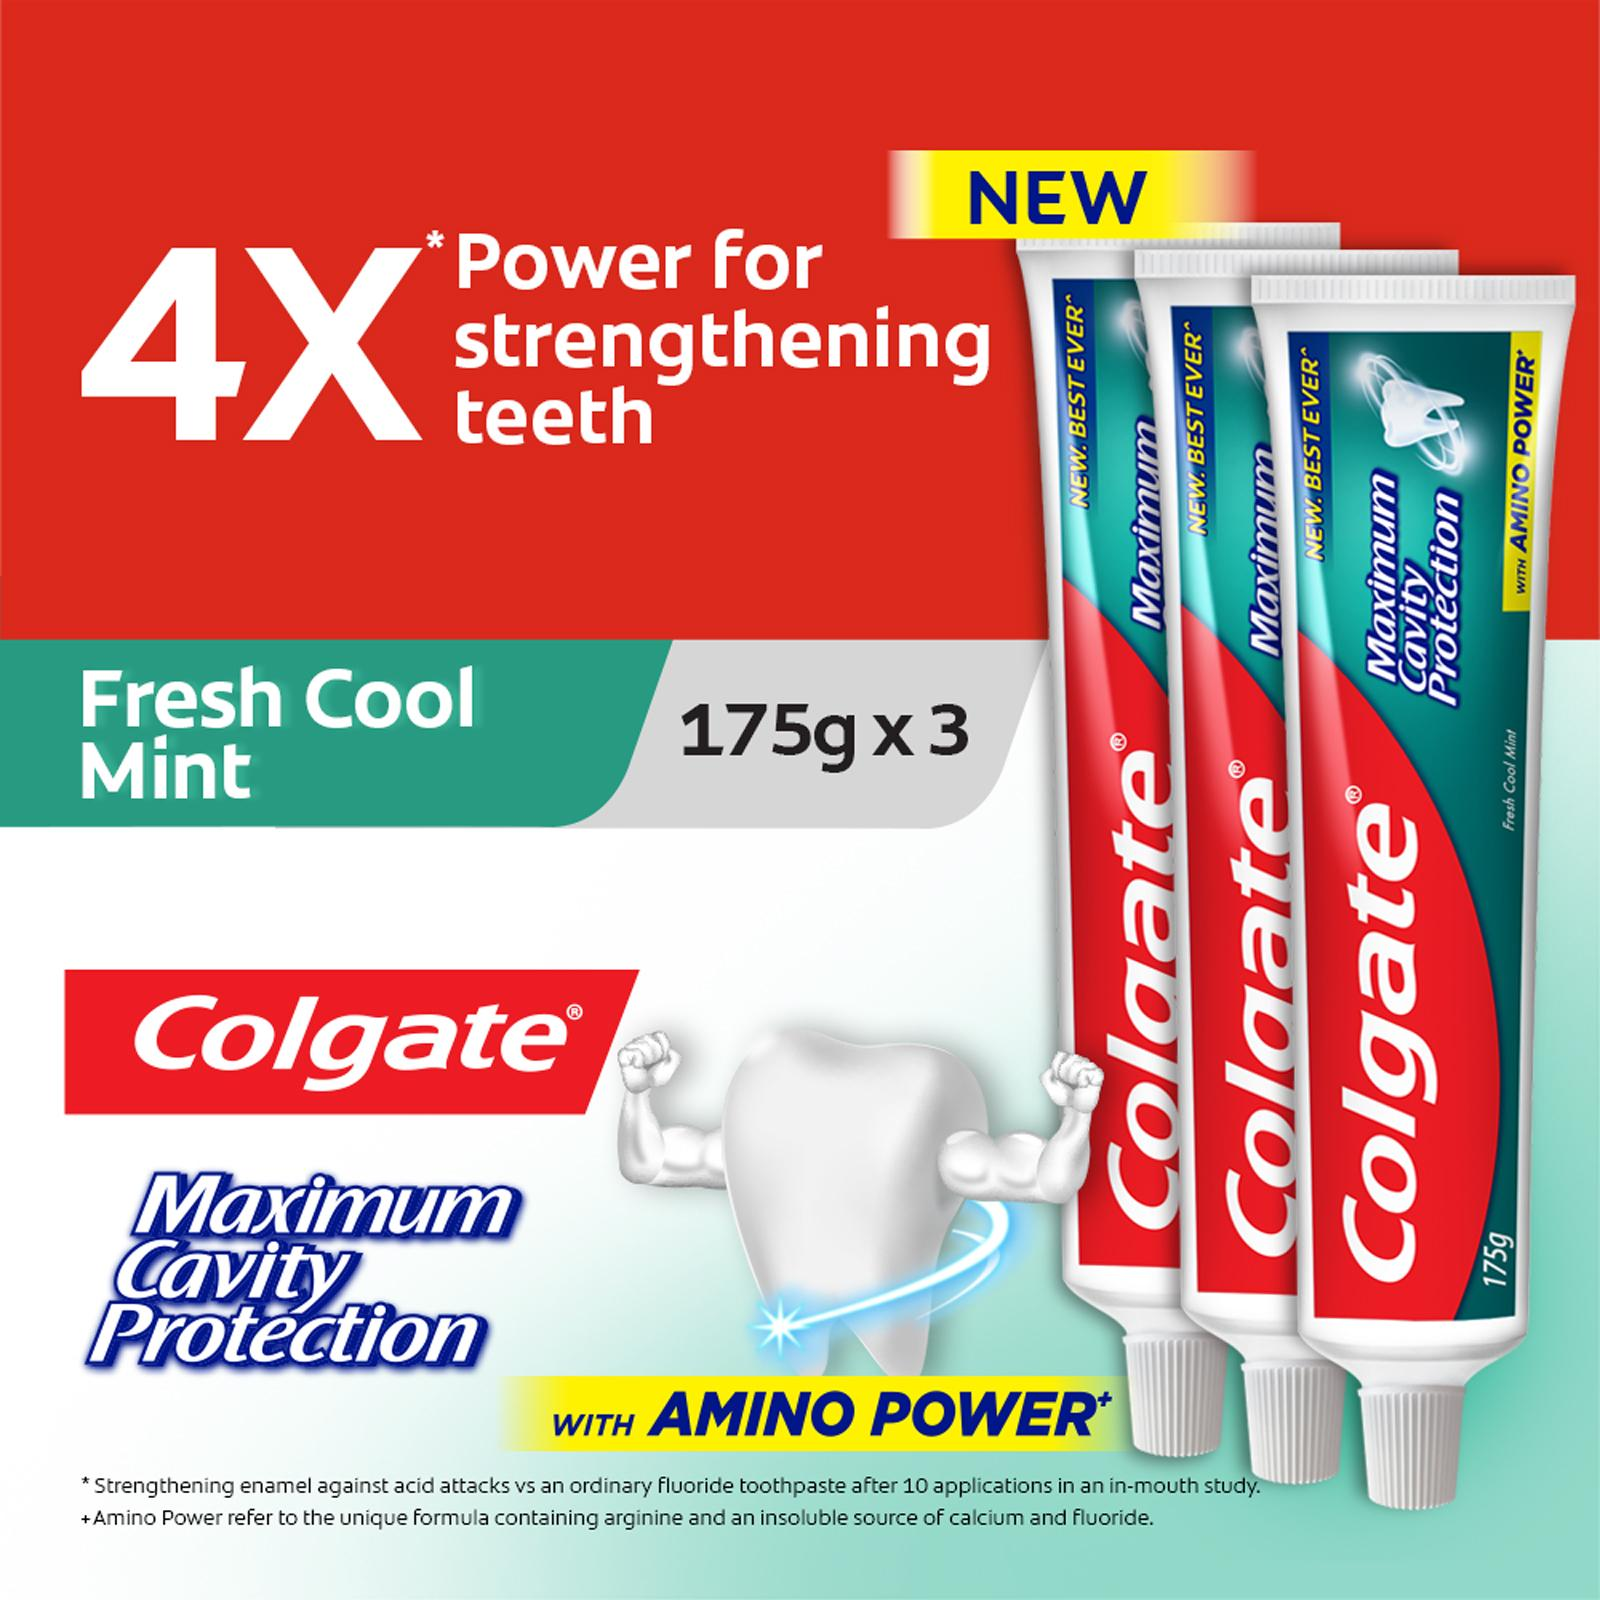 Colgate Maximum Cavity Protection Fresh Cool Mint ToothpasteValuepack175g x 3